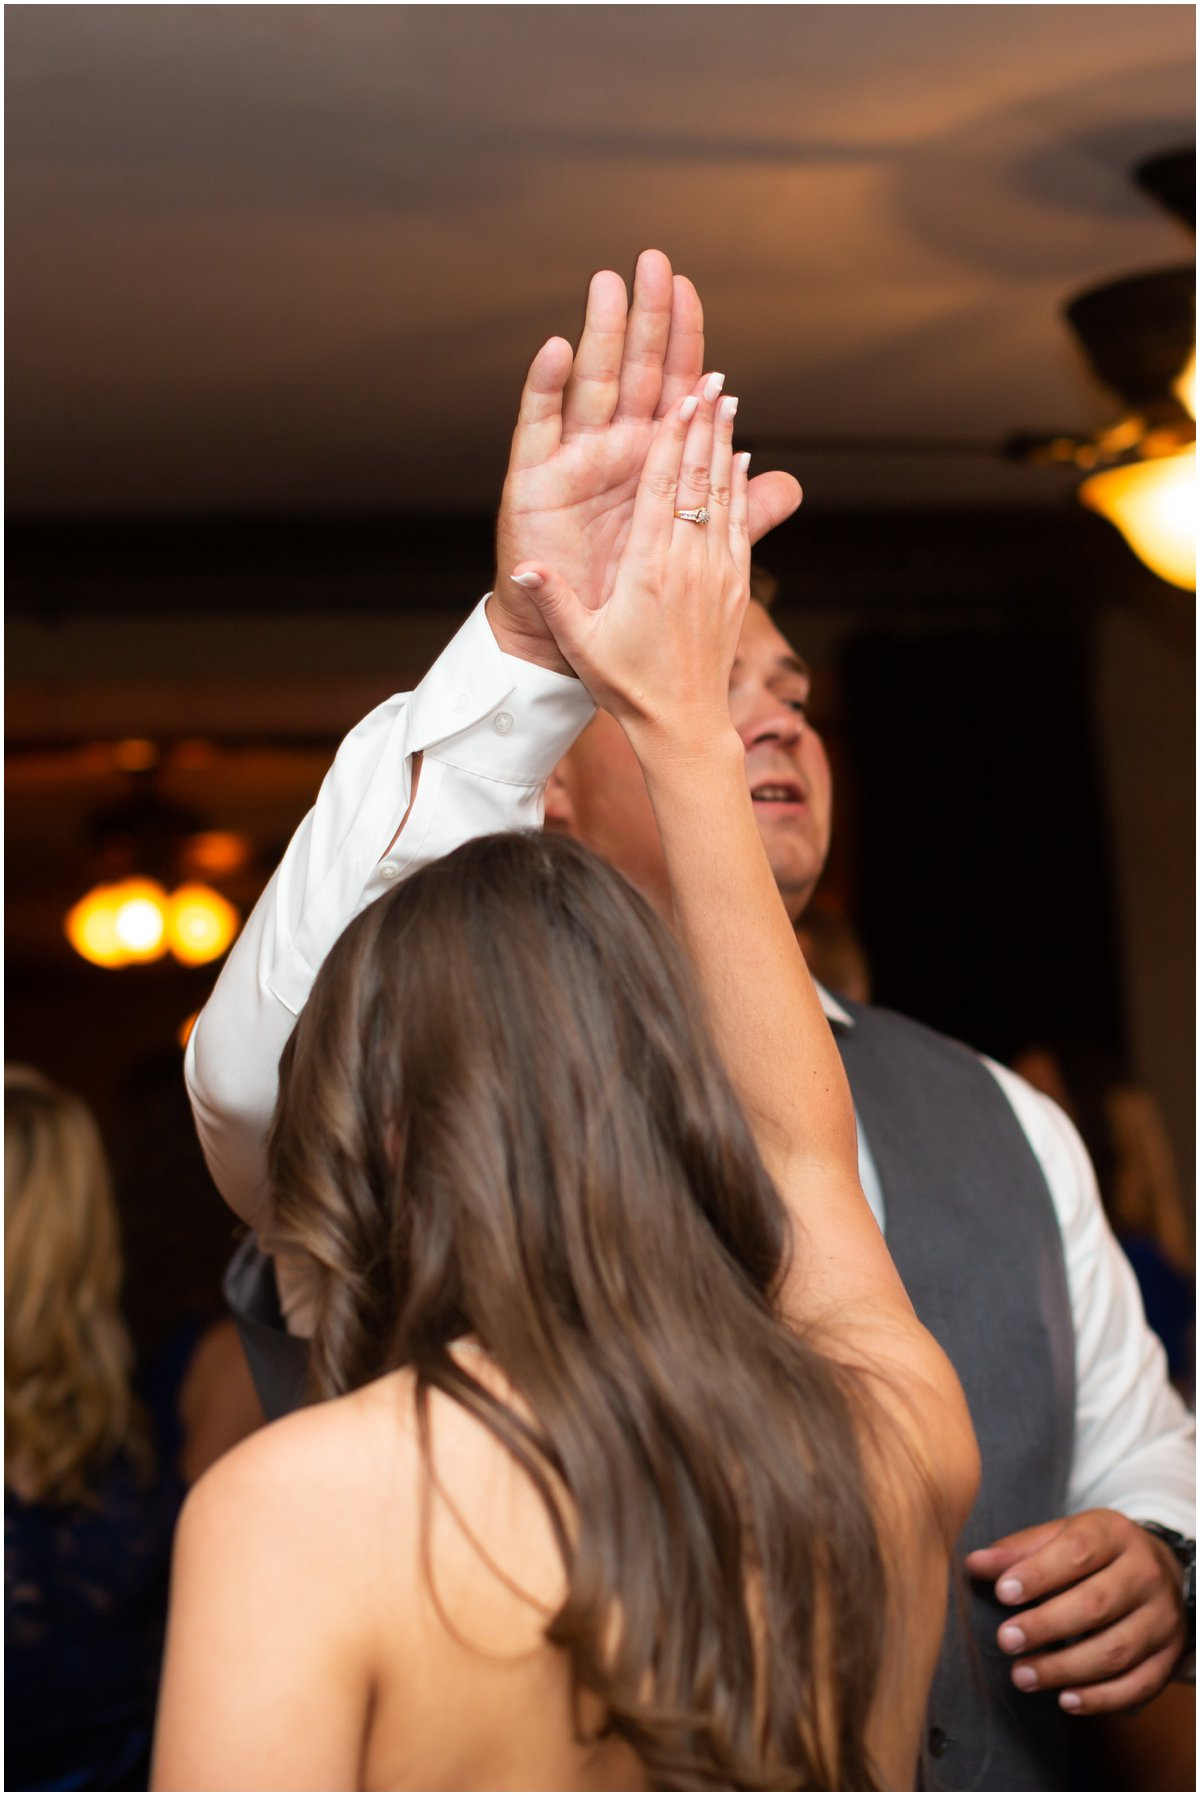 Katie high-fives one of the groomsmen on the dance floor.